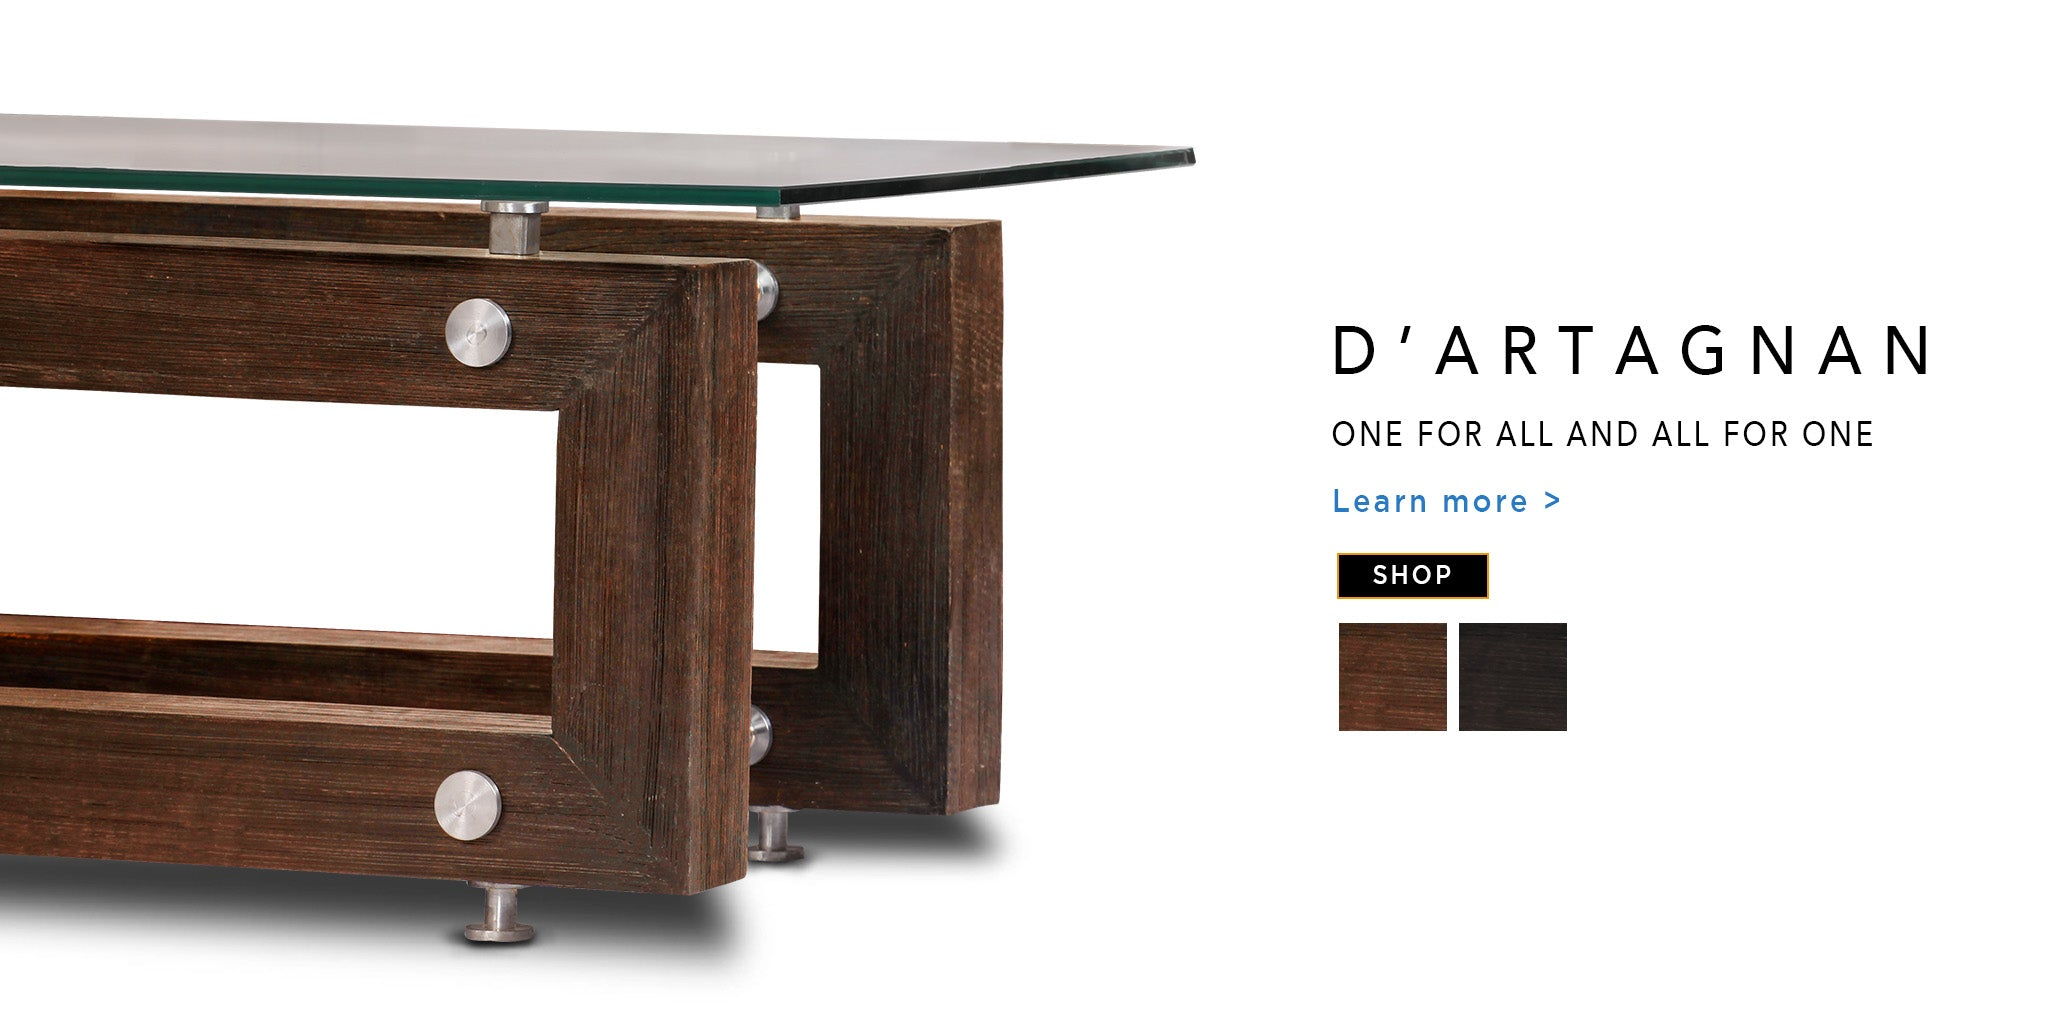 Counter Culture Coffee Table D'Artagnan